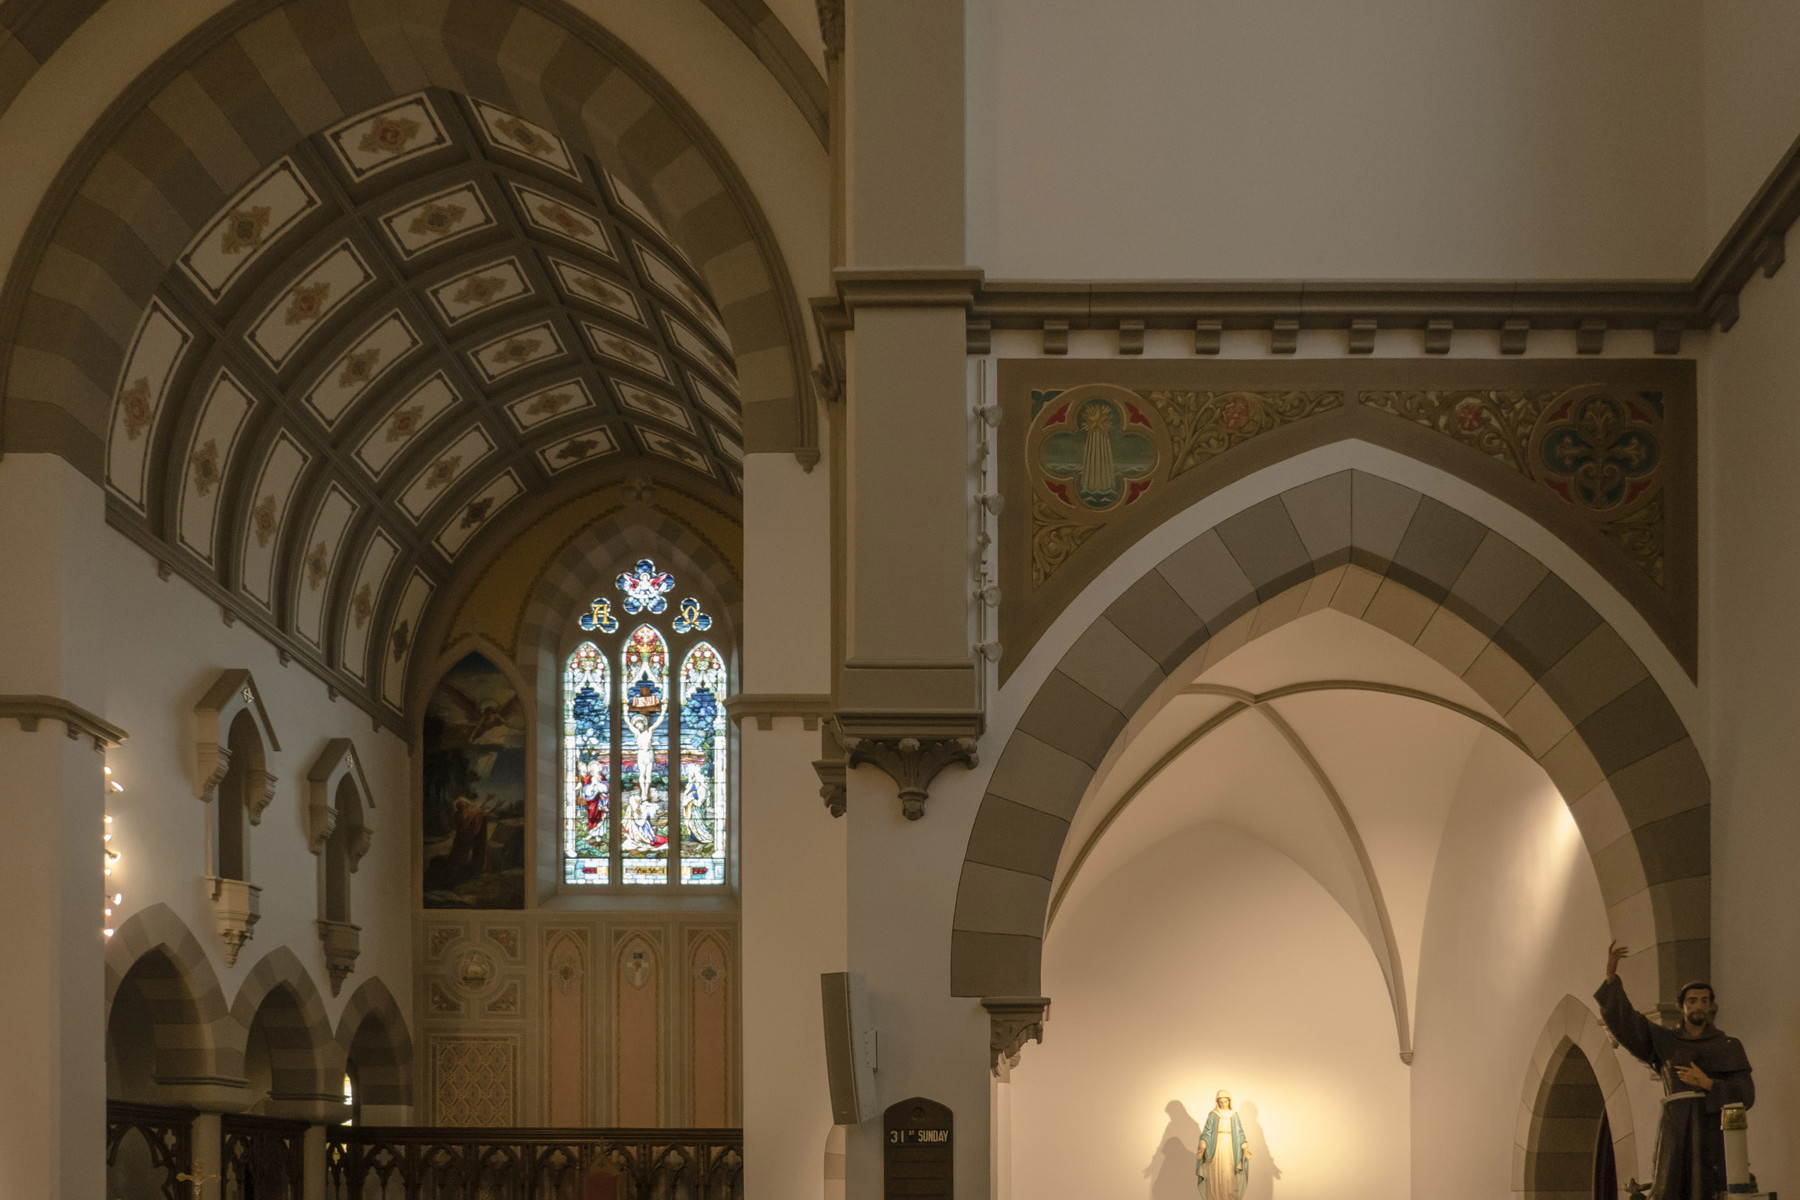 View of Nave from Alter highlighting statue of the Virgin Mary, with wood pews, stained glass windows and vaulted ceiling